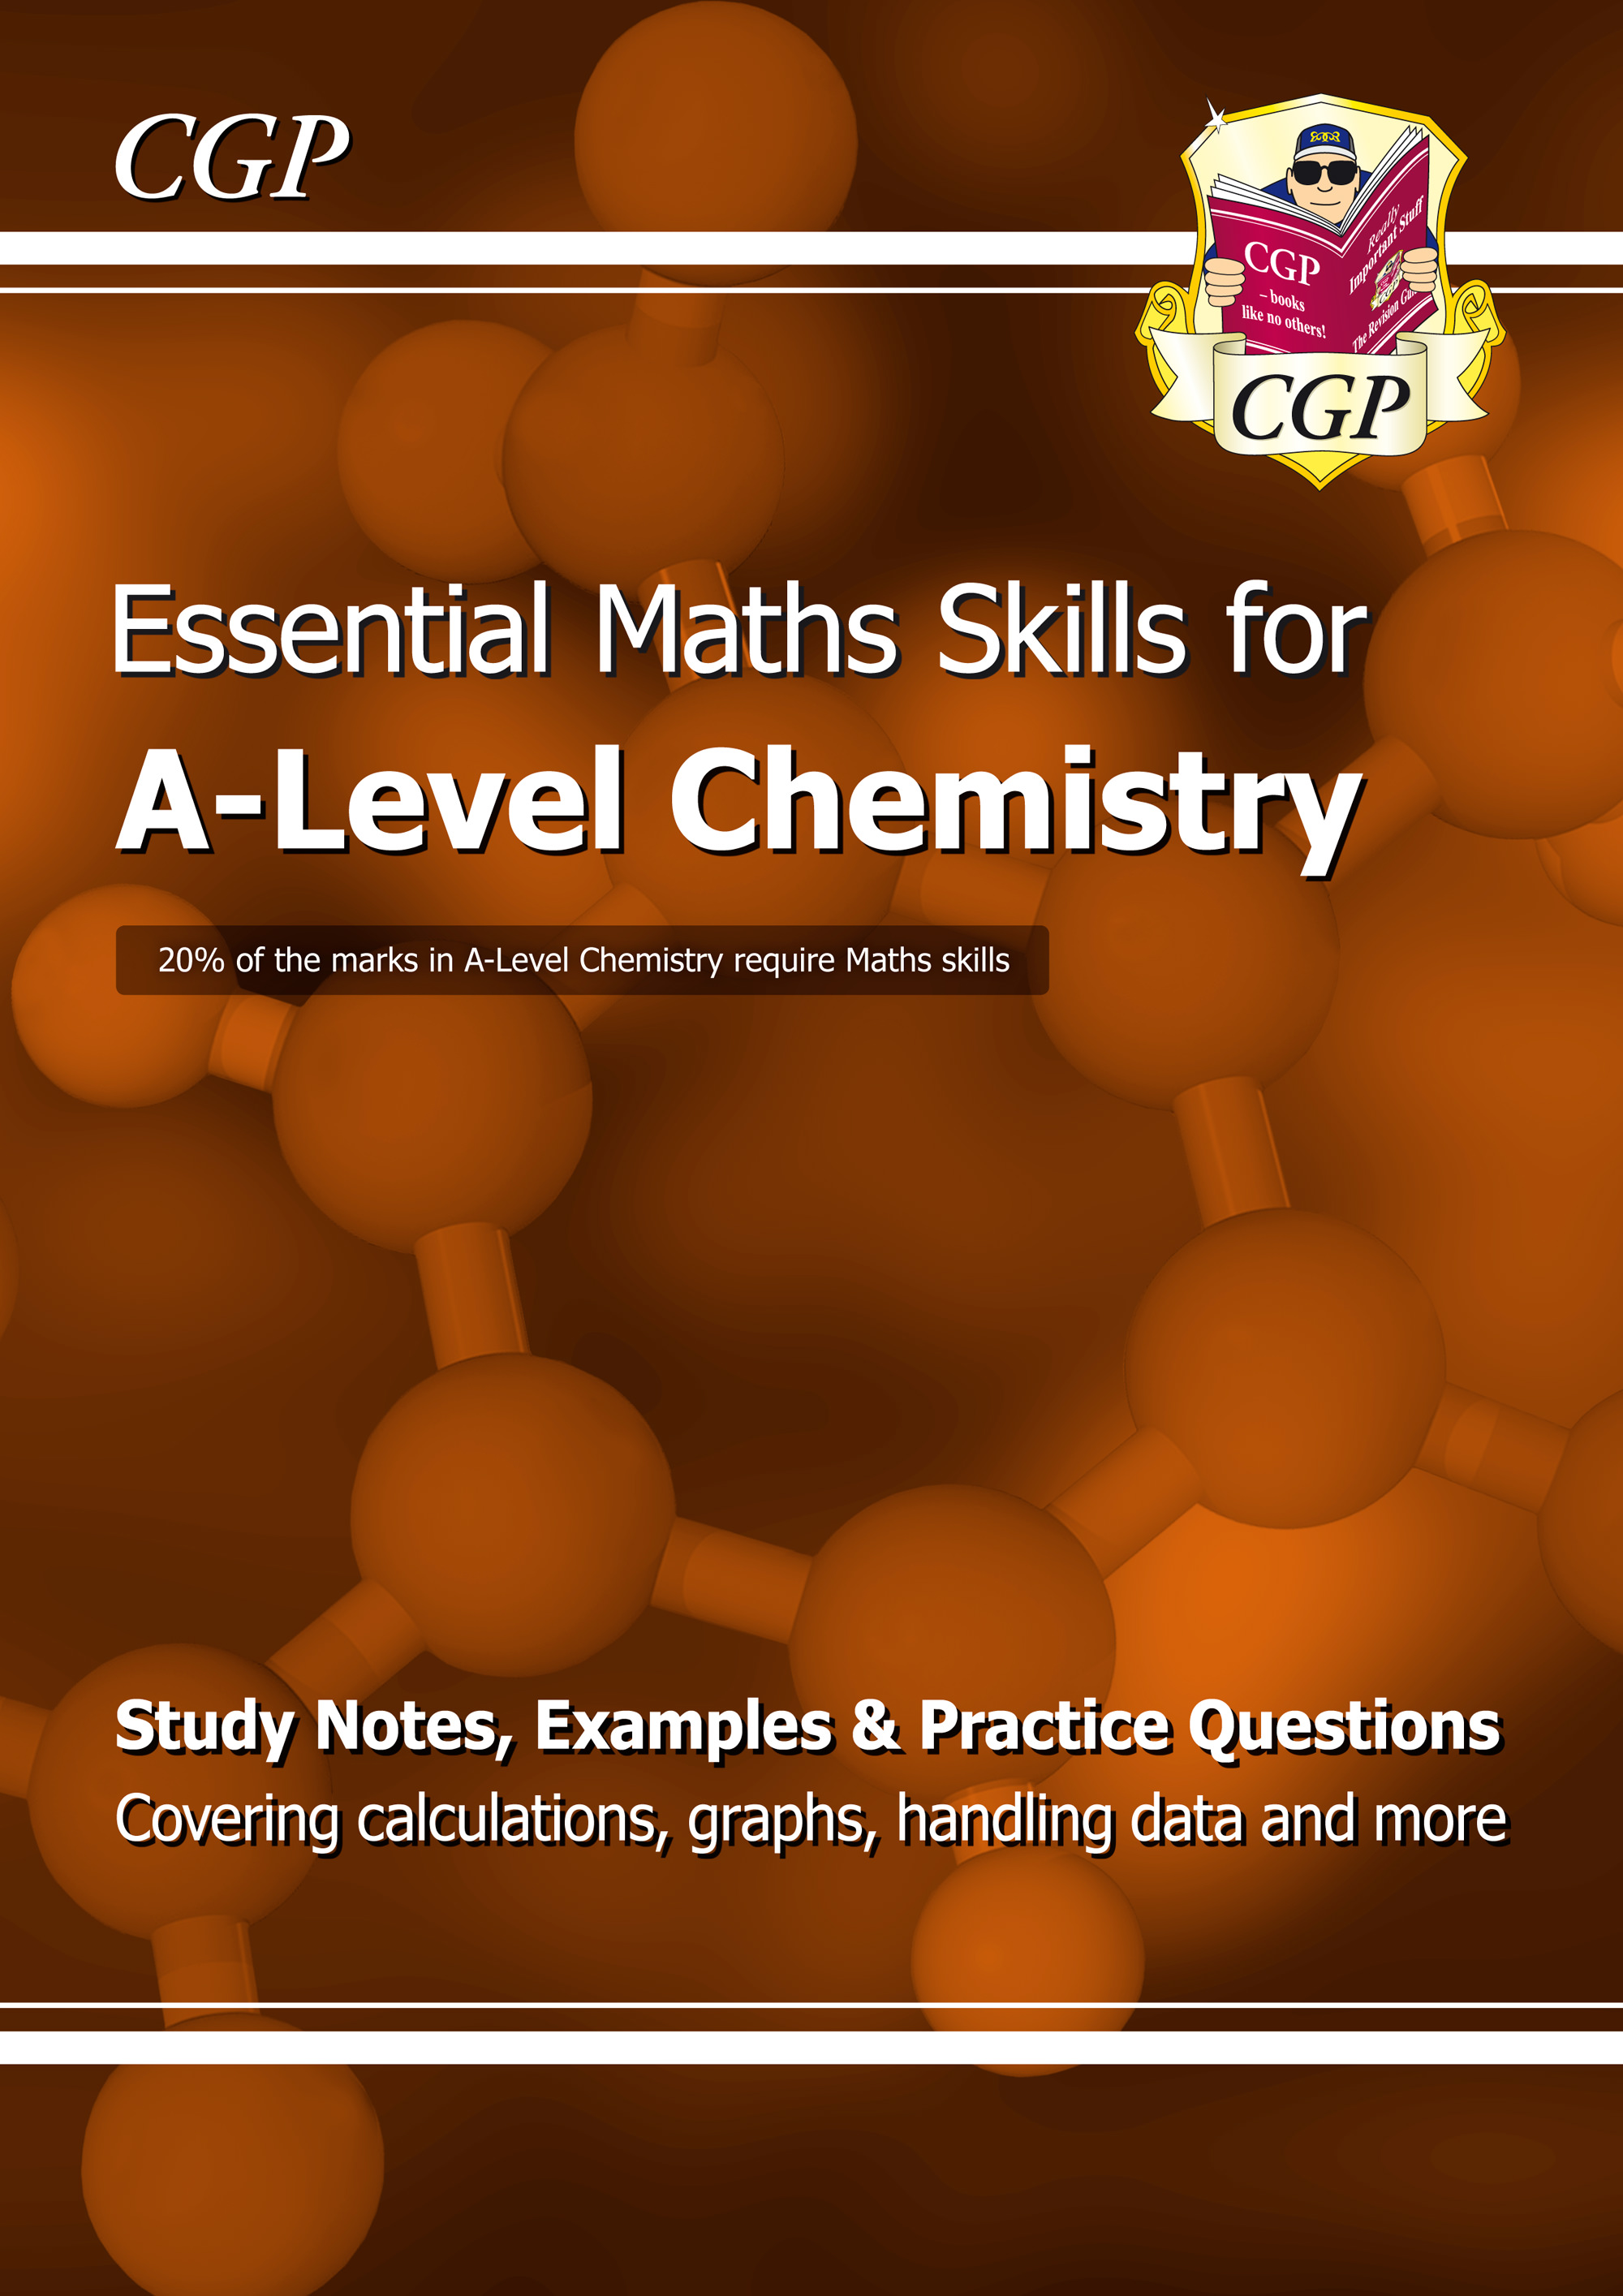 CMR71 - A-Level Chemistry: Essential Maths Skills